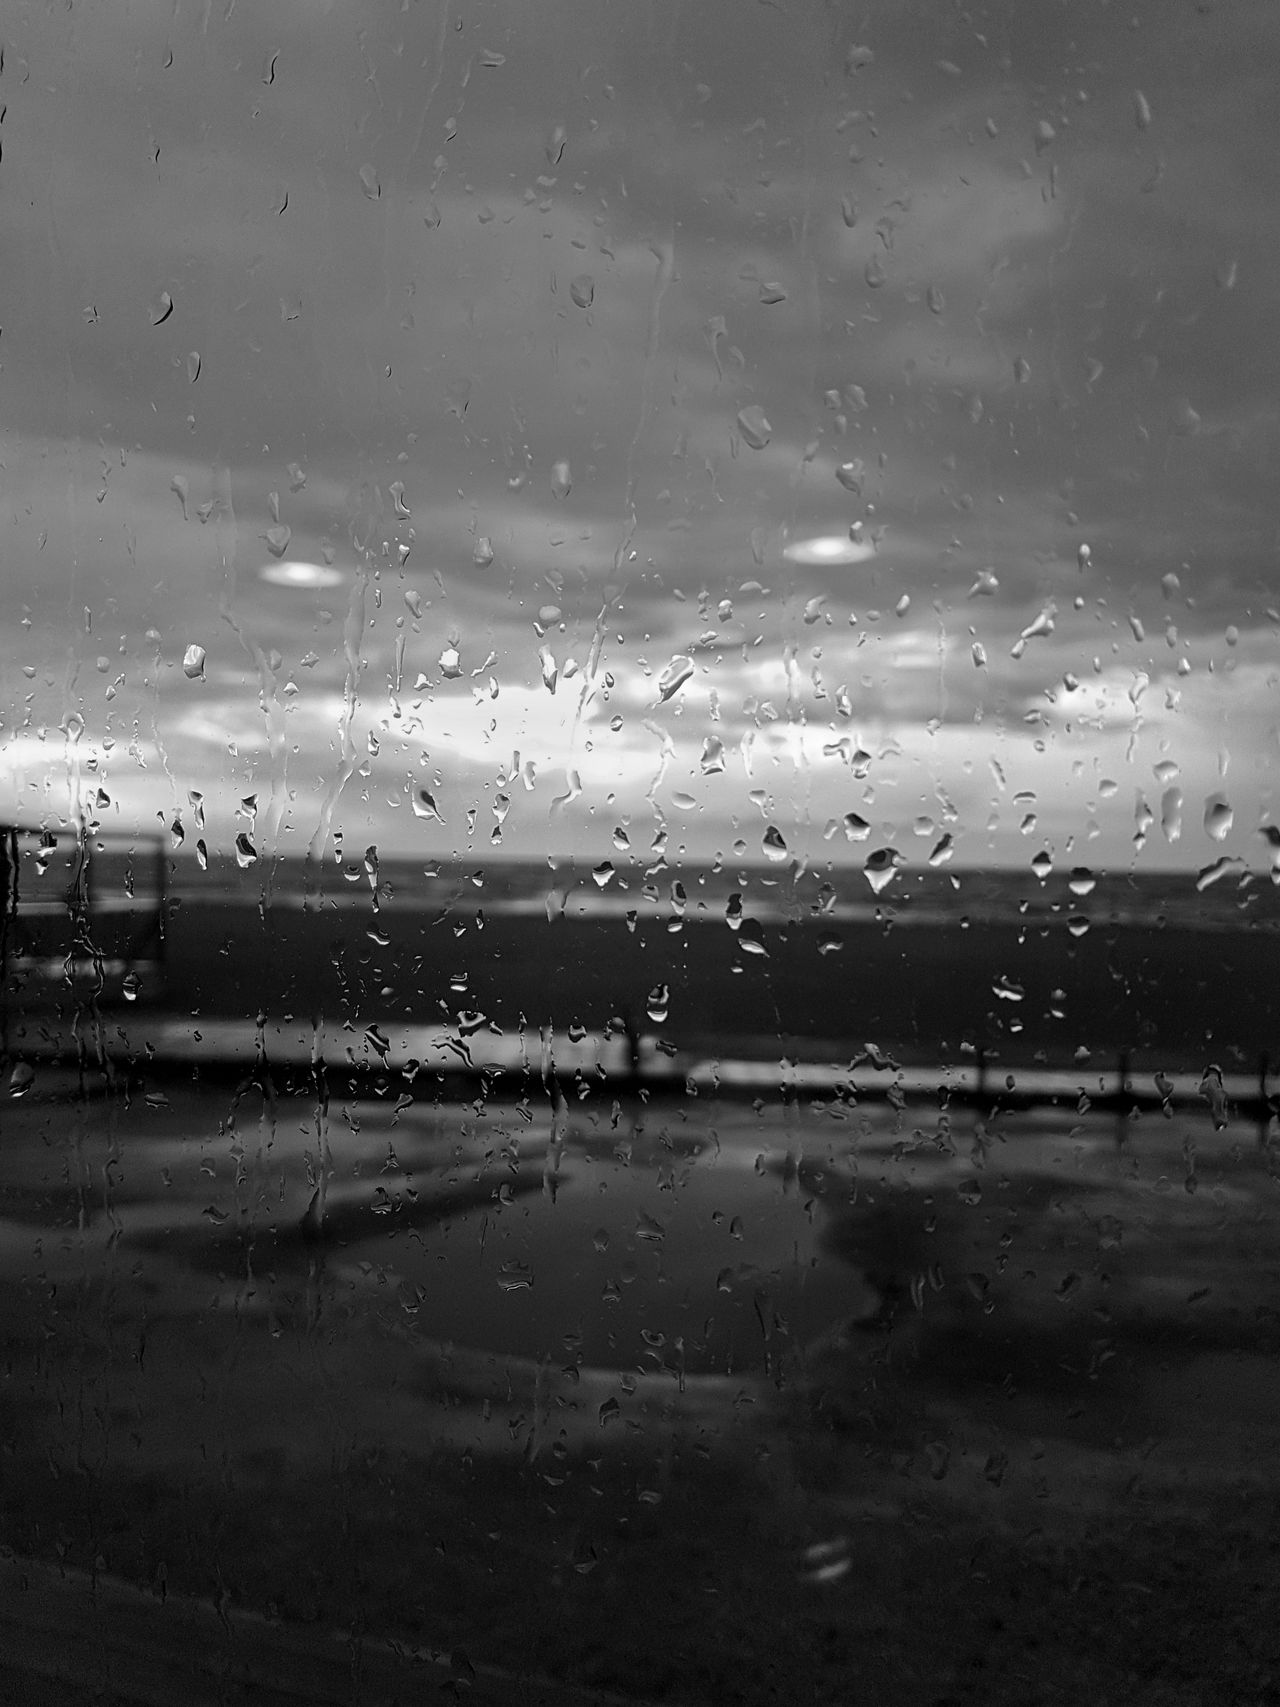 Backgrounds Drop No People Nature Sky Water Outdoors Close-up Beauty In Nature RainyDay Landscape Relaxing Taking Photos Beautiful Day Nature Perfectview Black & White Blackandwhite Black And White Photography Clouds Cloud - Sky